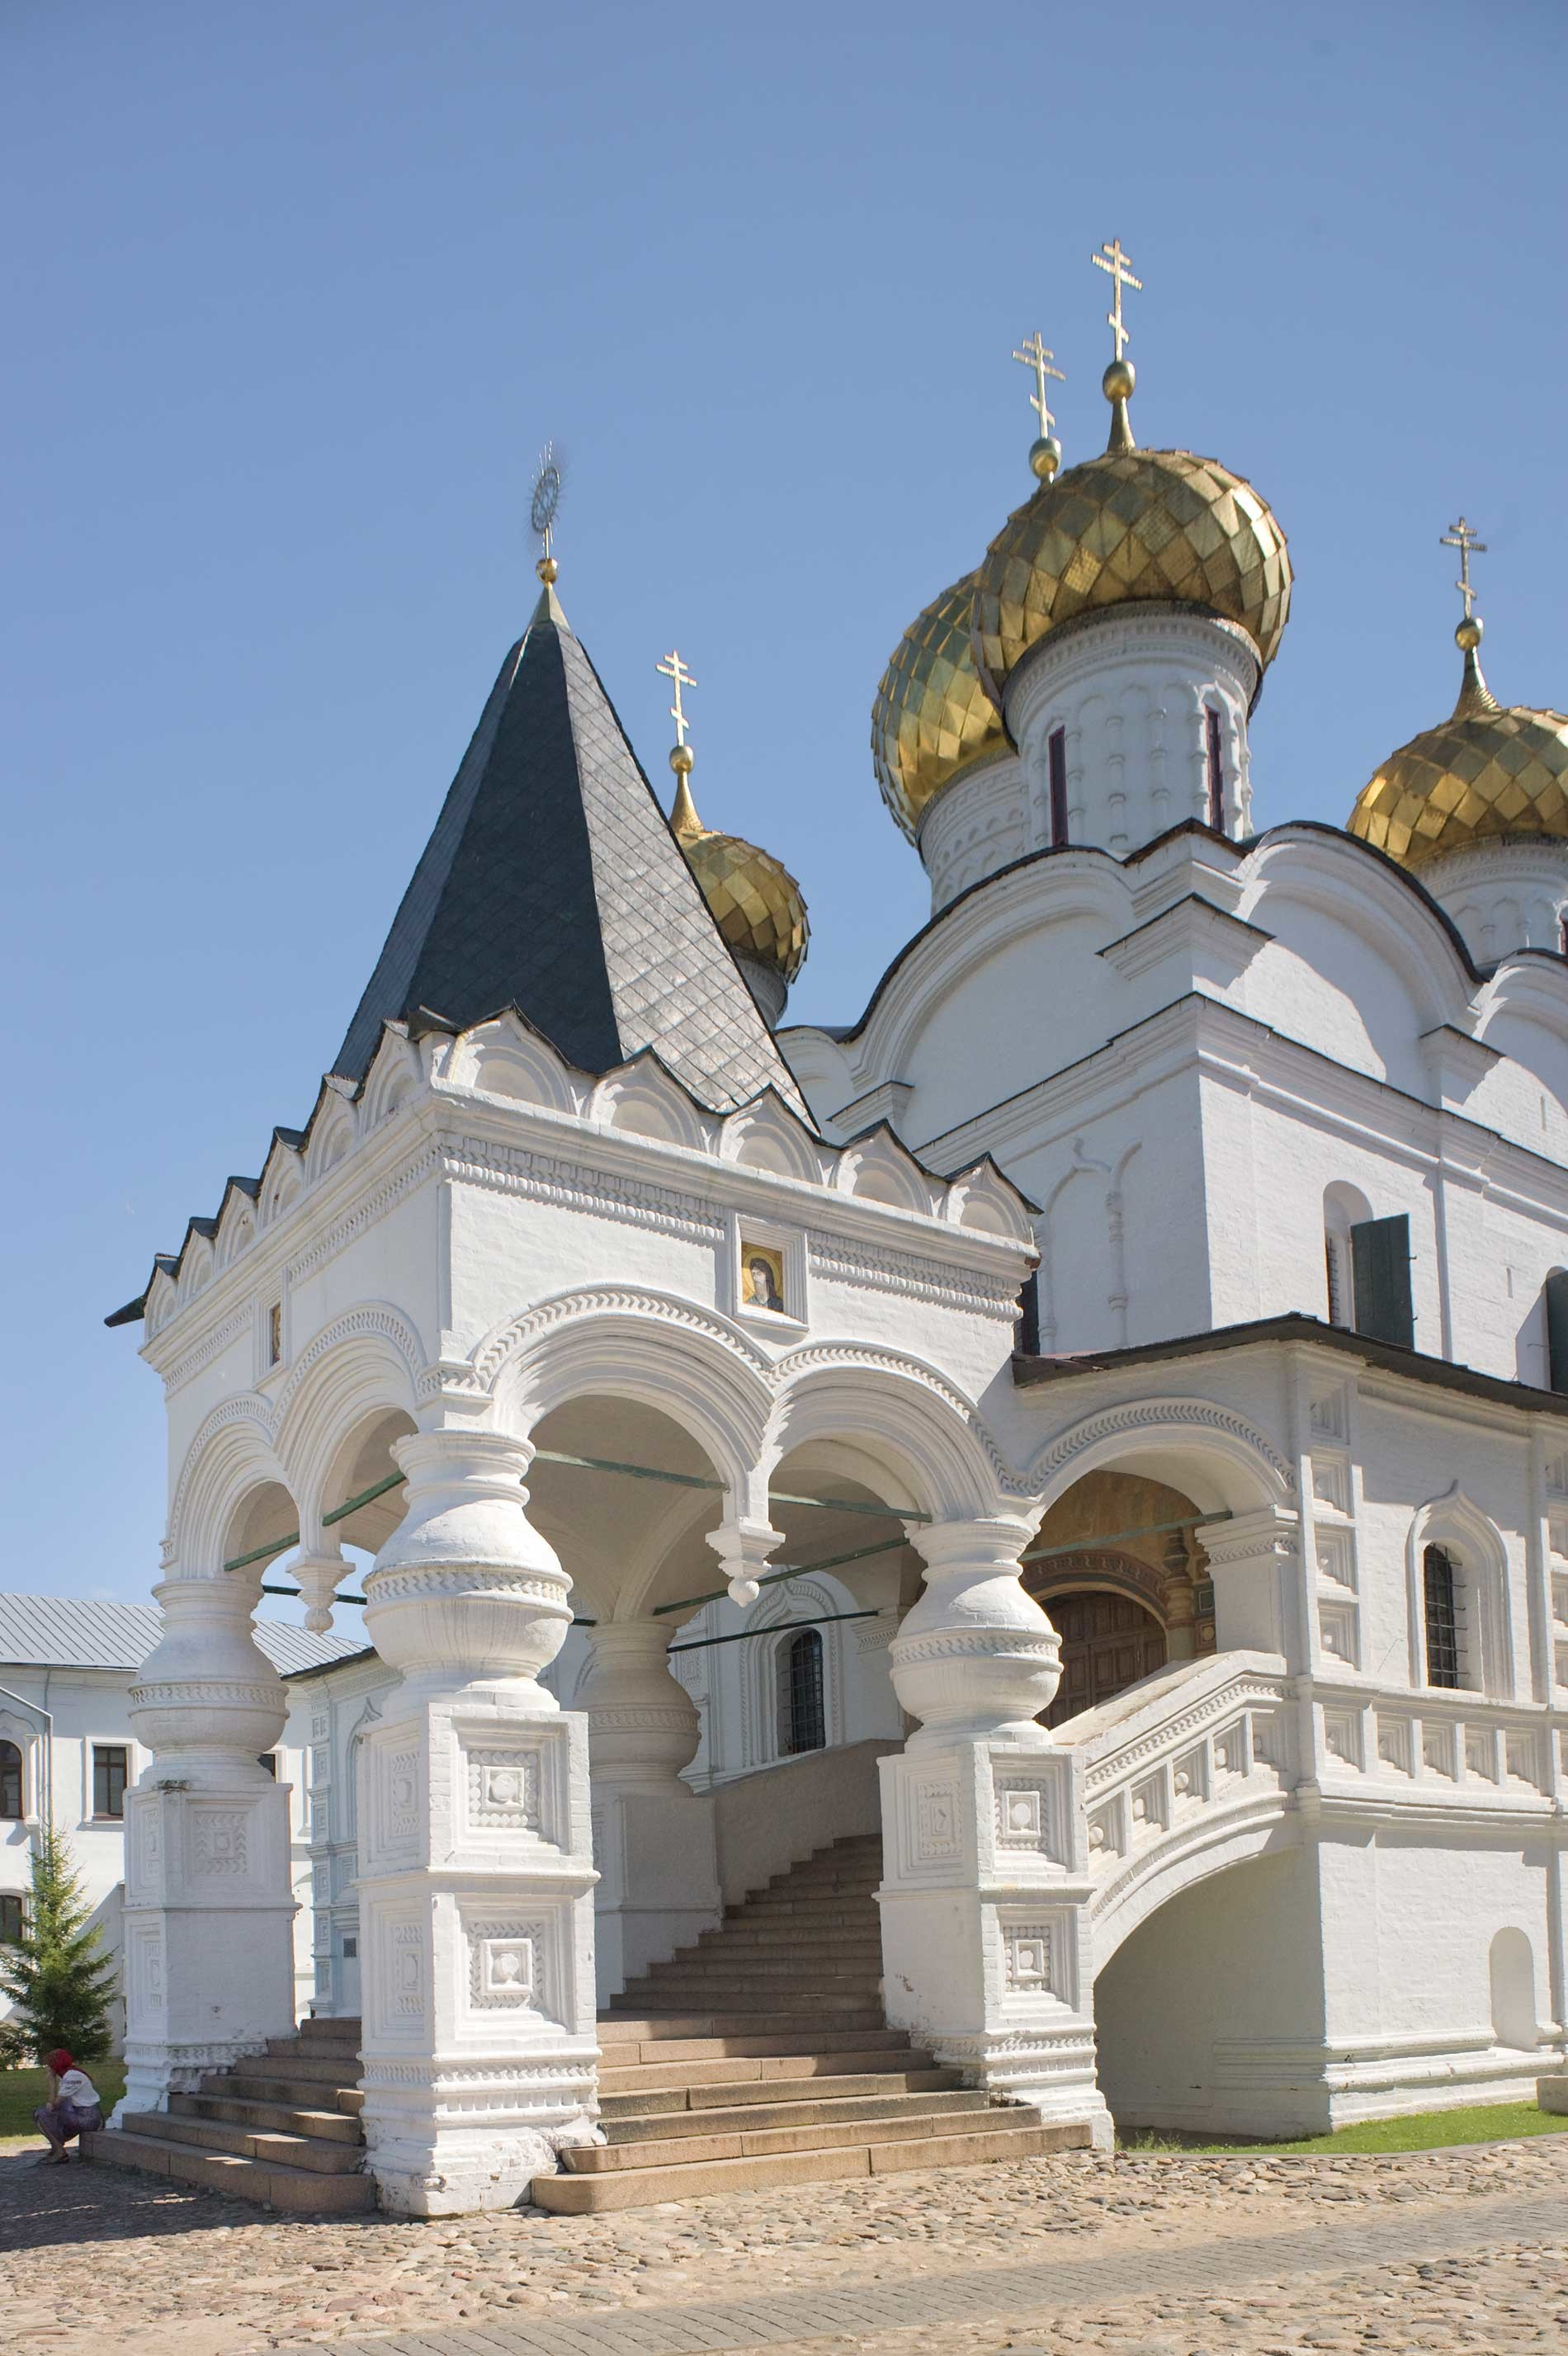 Trinity-Ipatiev Monastery. Trinity Cathedral, northwest corner with porch & stairs to west gallery. Aug. 13, 2017.